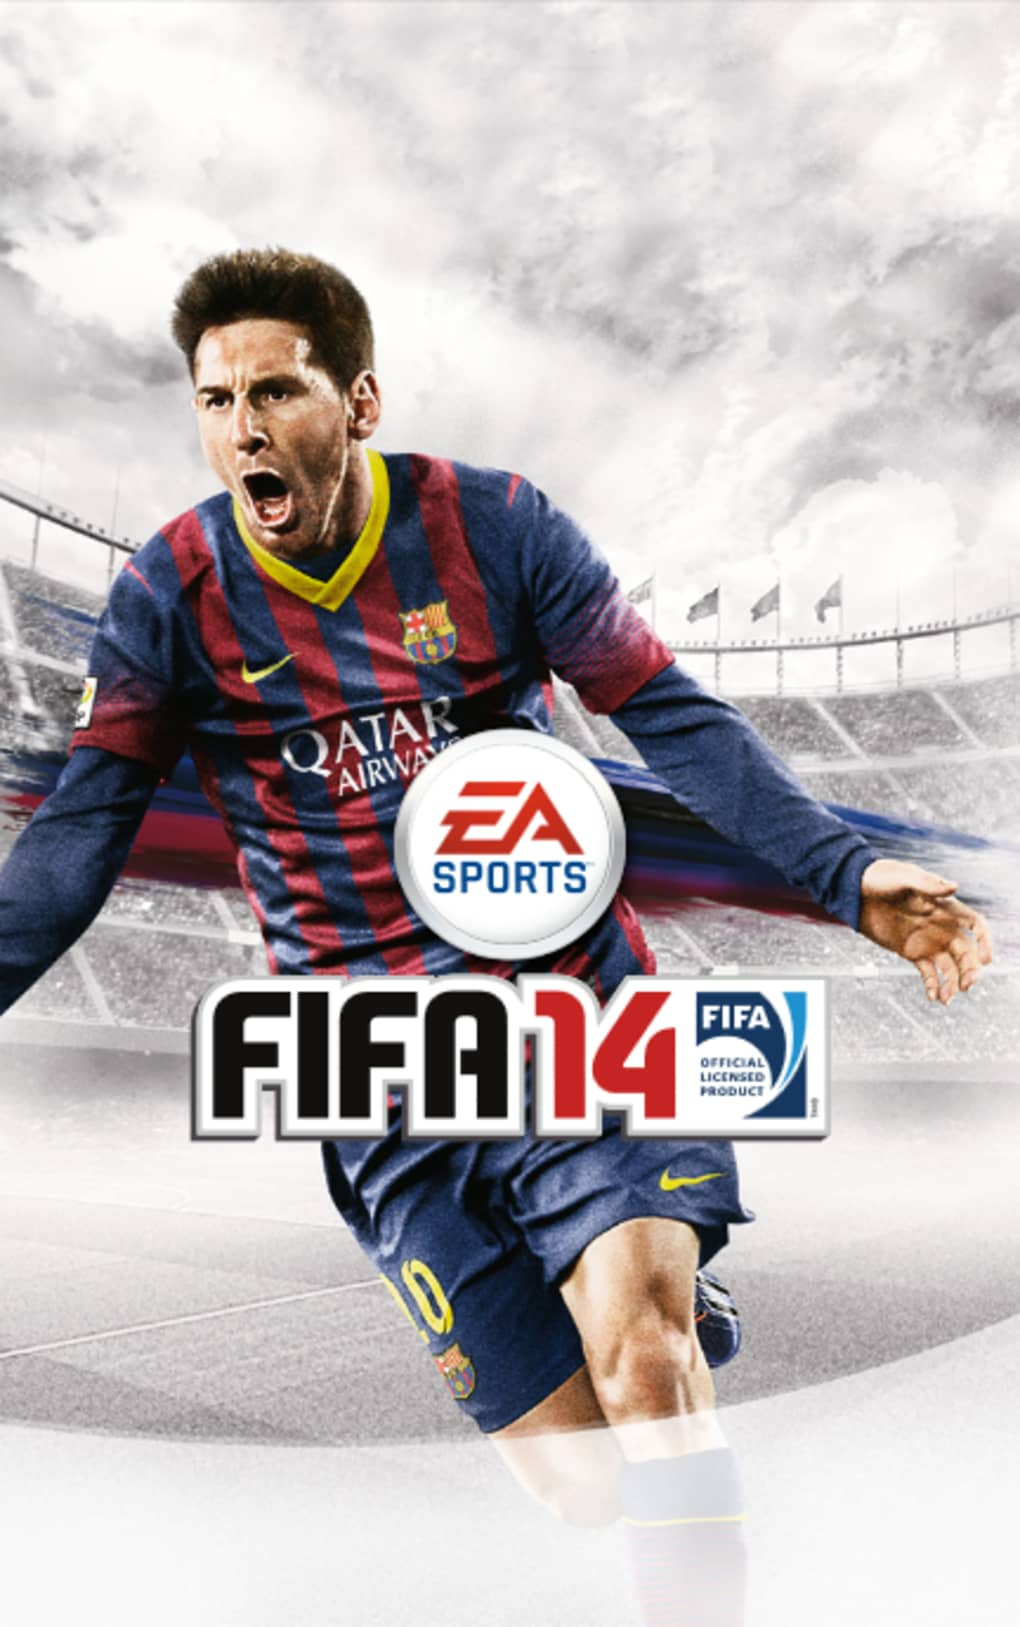 download origin for fifa 14 windows 10